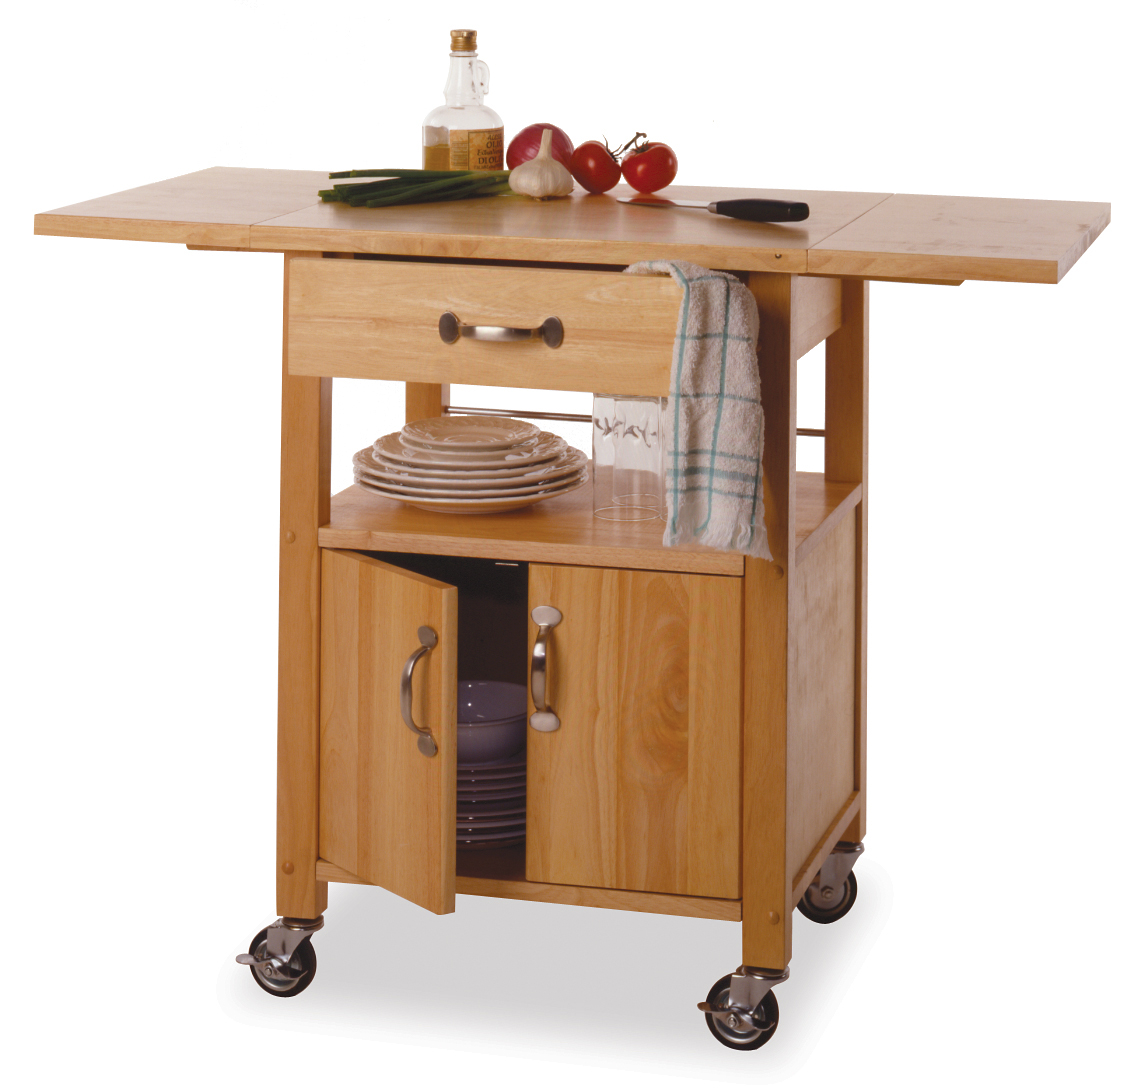 Winsome 84920 Beech Beechwood KITCHEN CART DROP LEAF